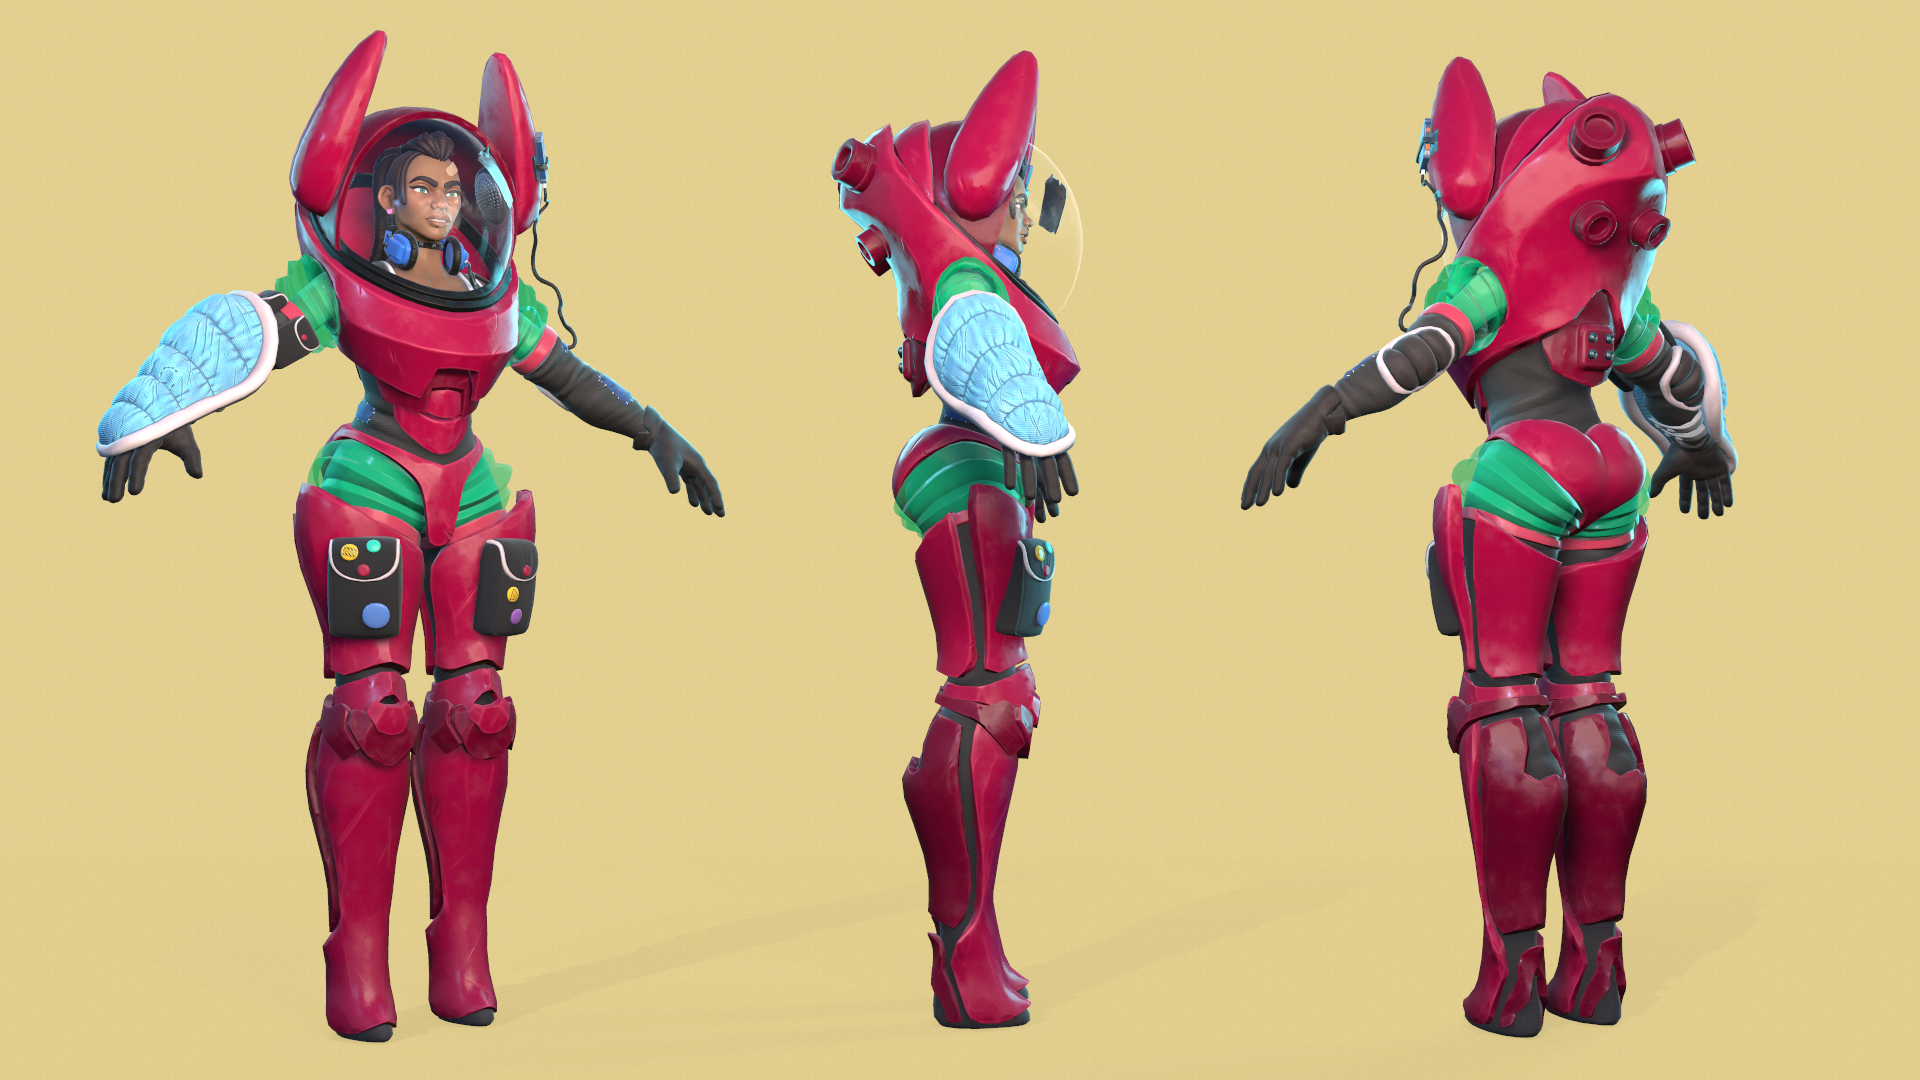 A character seen from three different angles wearing a futuristic spacesuit.